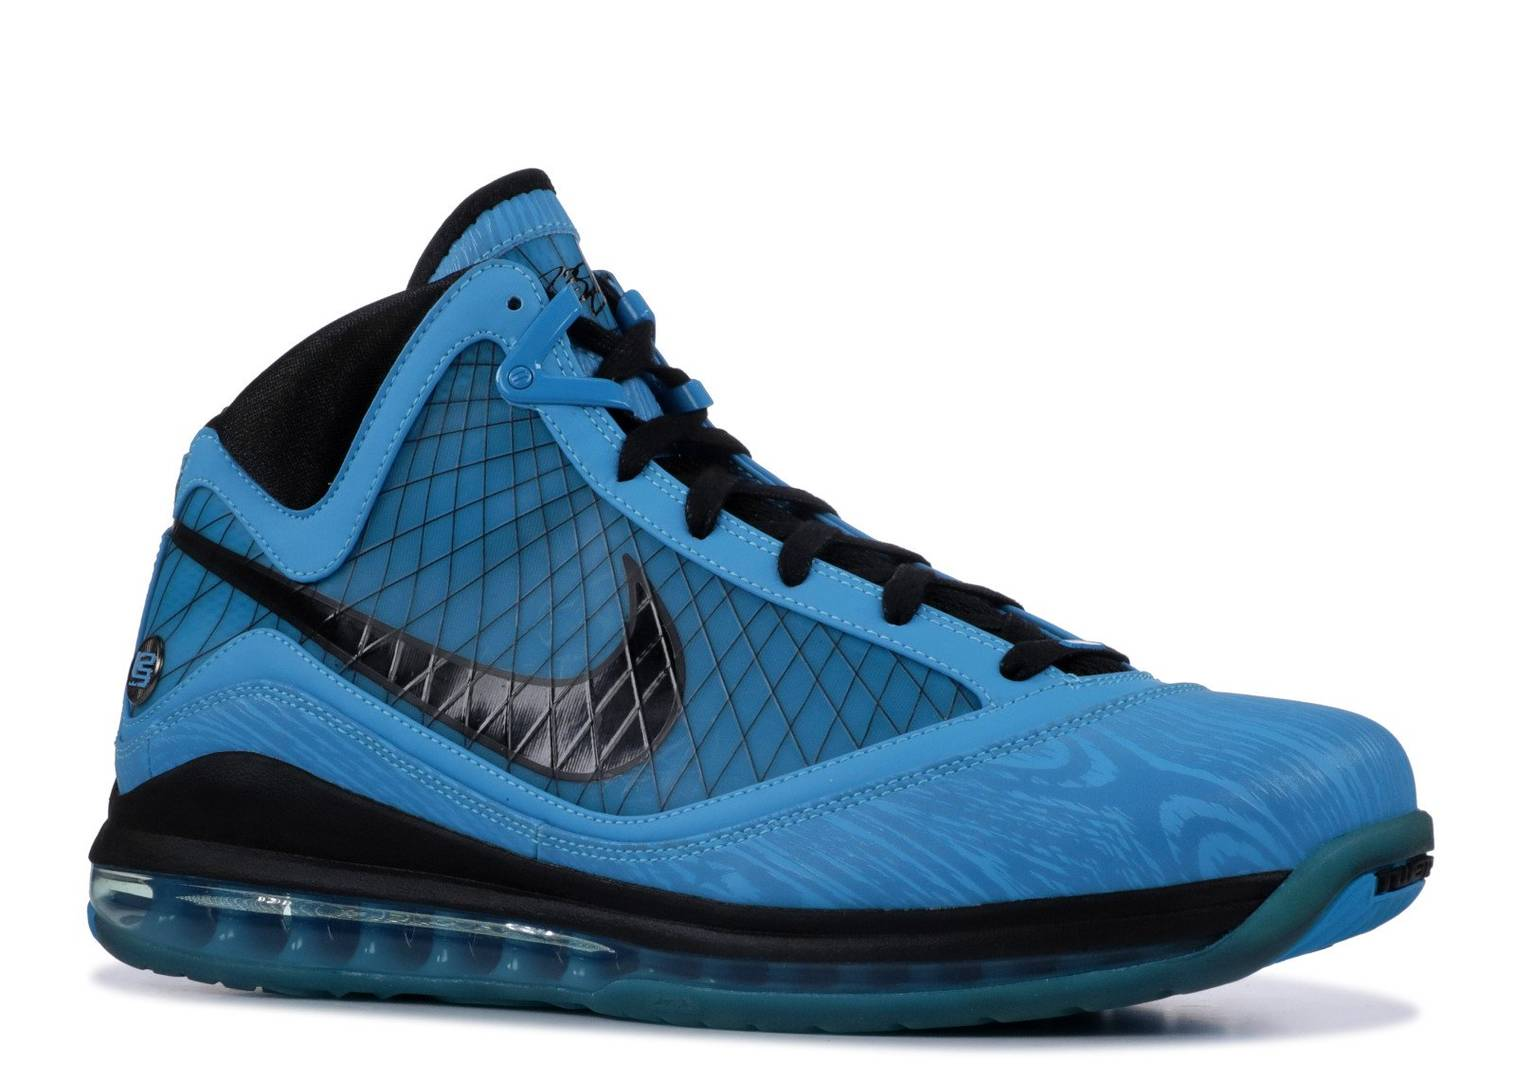 """LeBron James' """"All Star"""" Nike LeBron 7 Set To Release Again: Details"""